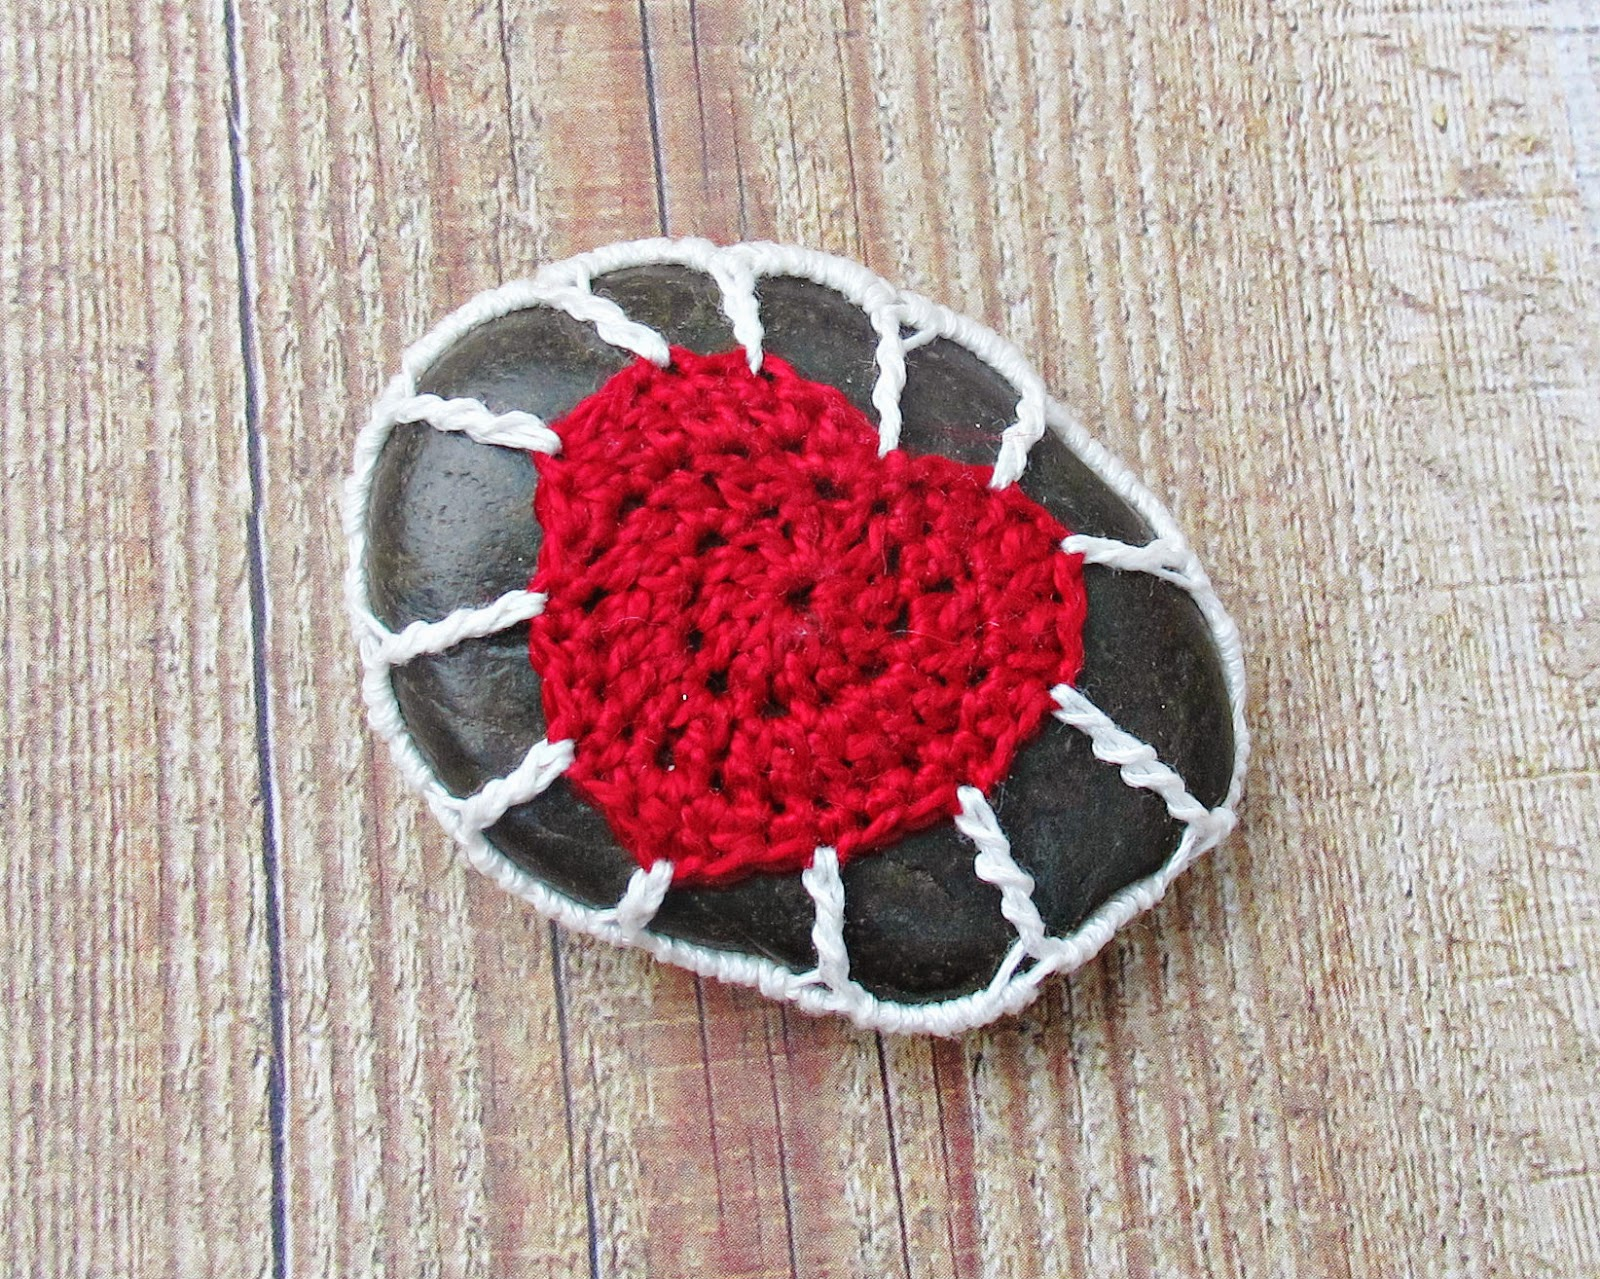 image crochet pebble cozy magnet red heart white love domum vindemia stone fridge